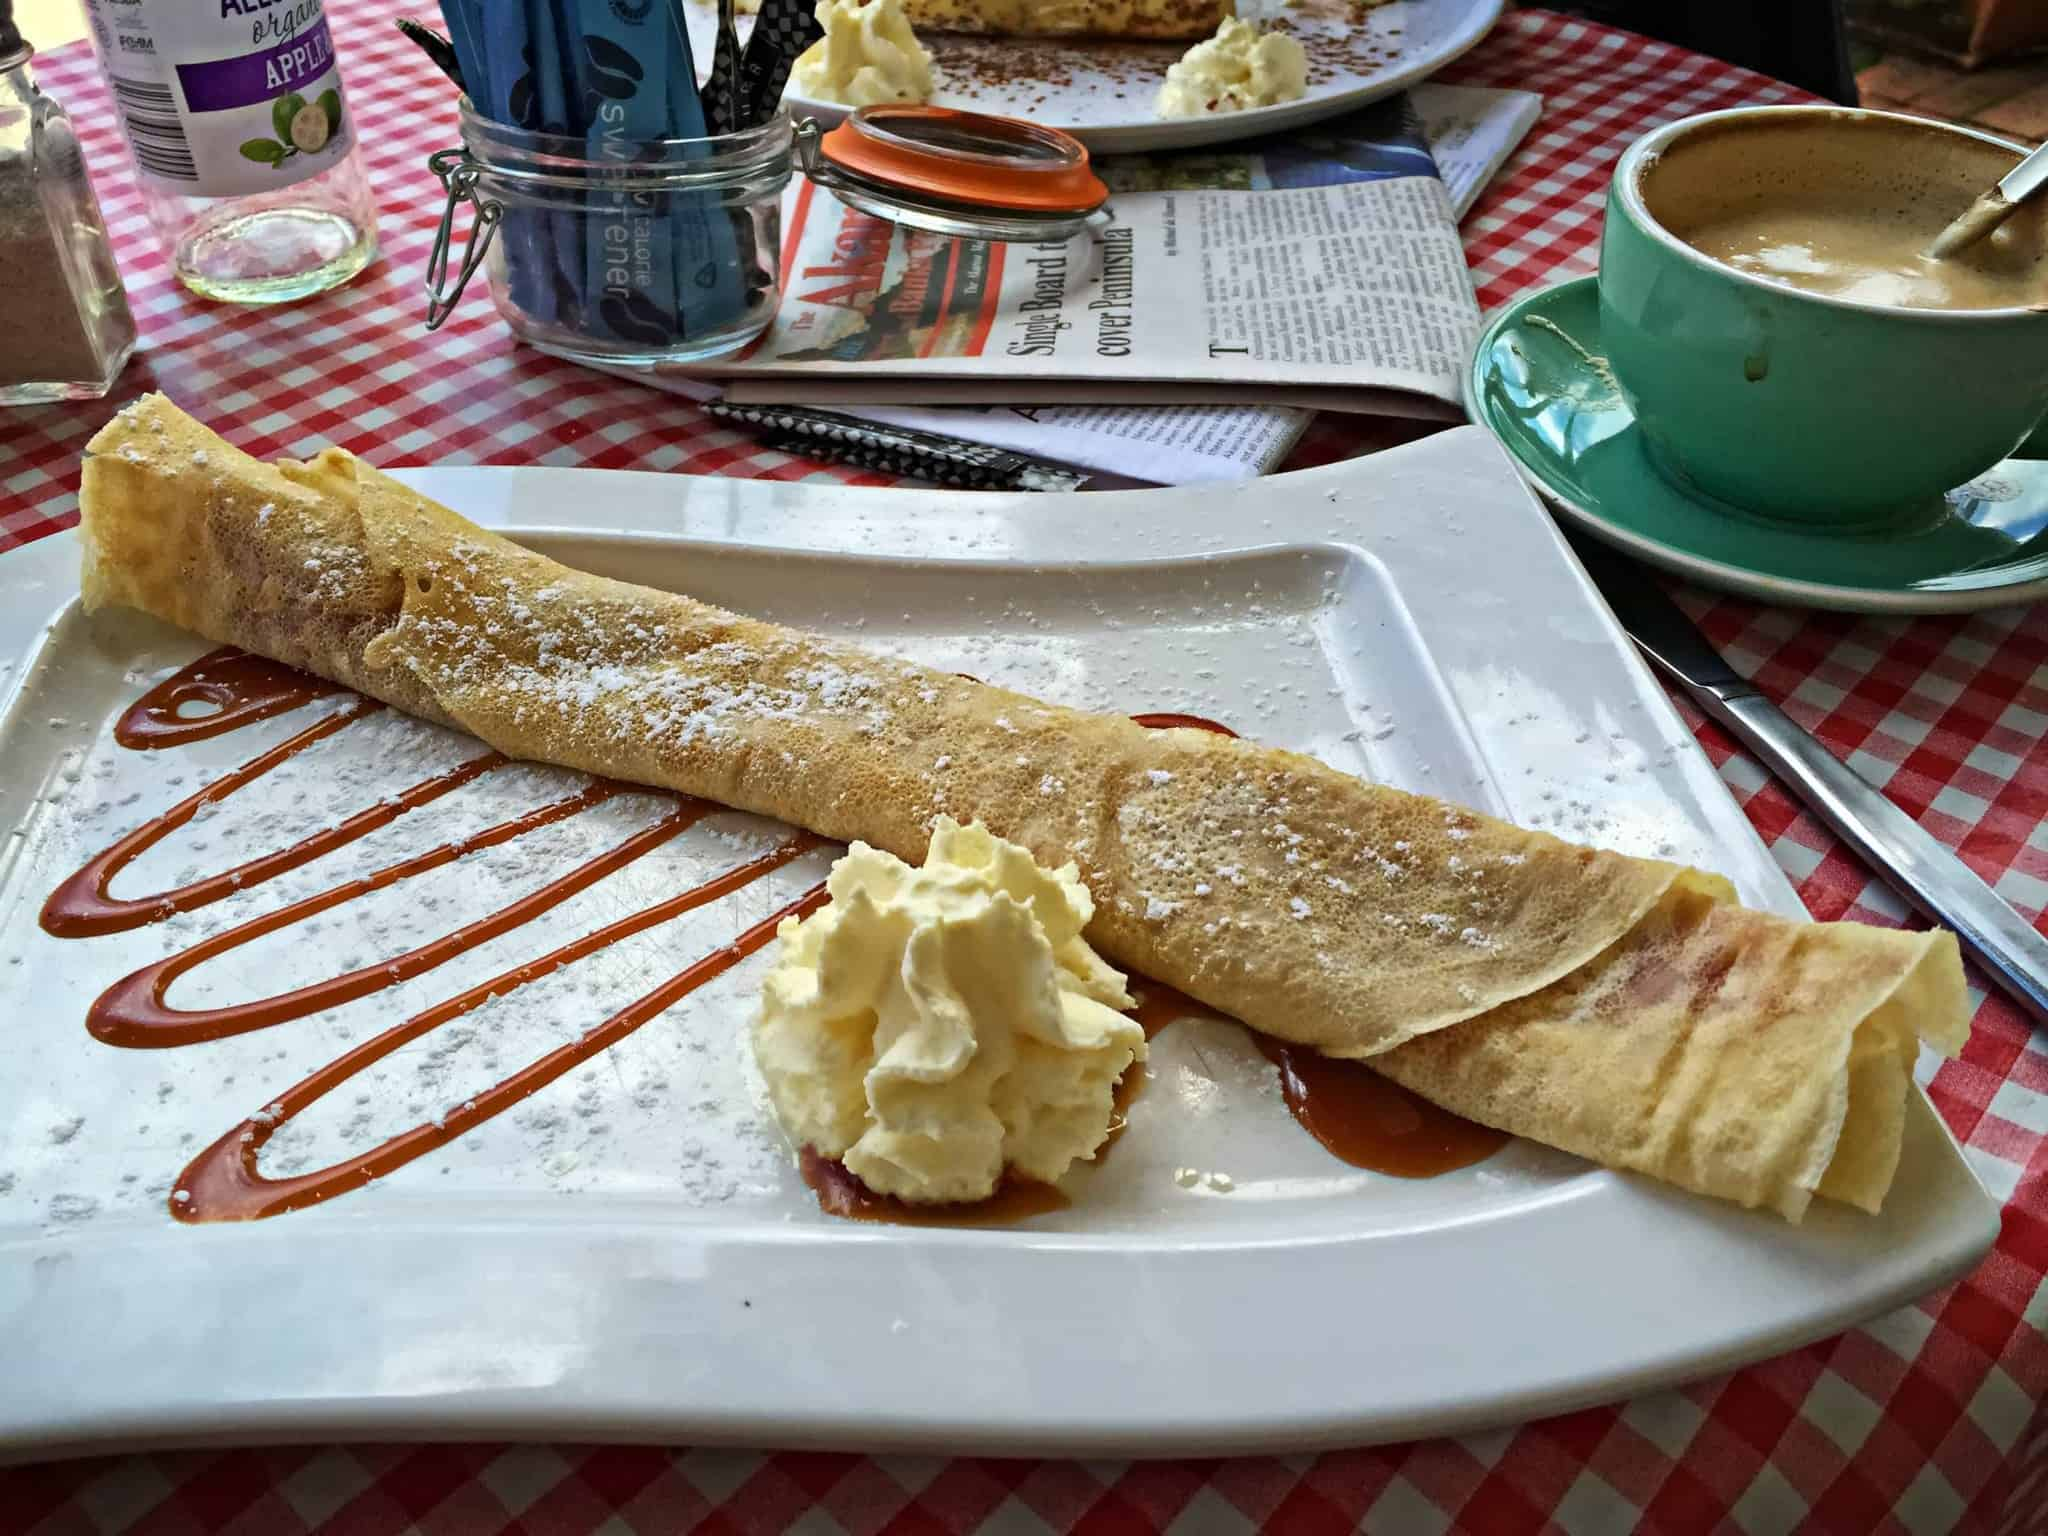 Caramel Crepes and Cafe au Lait